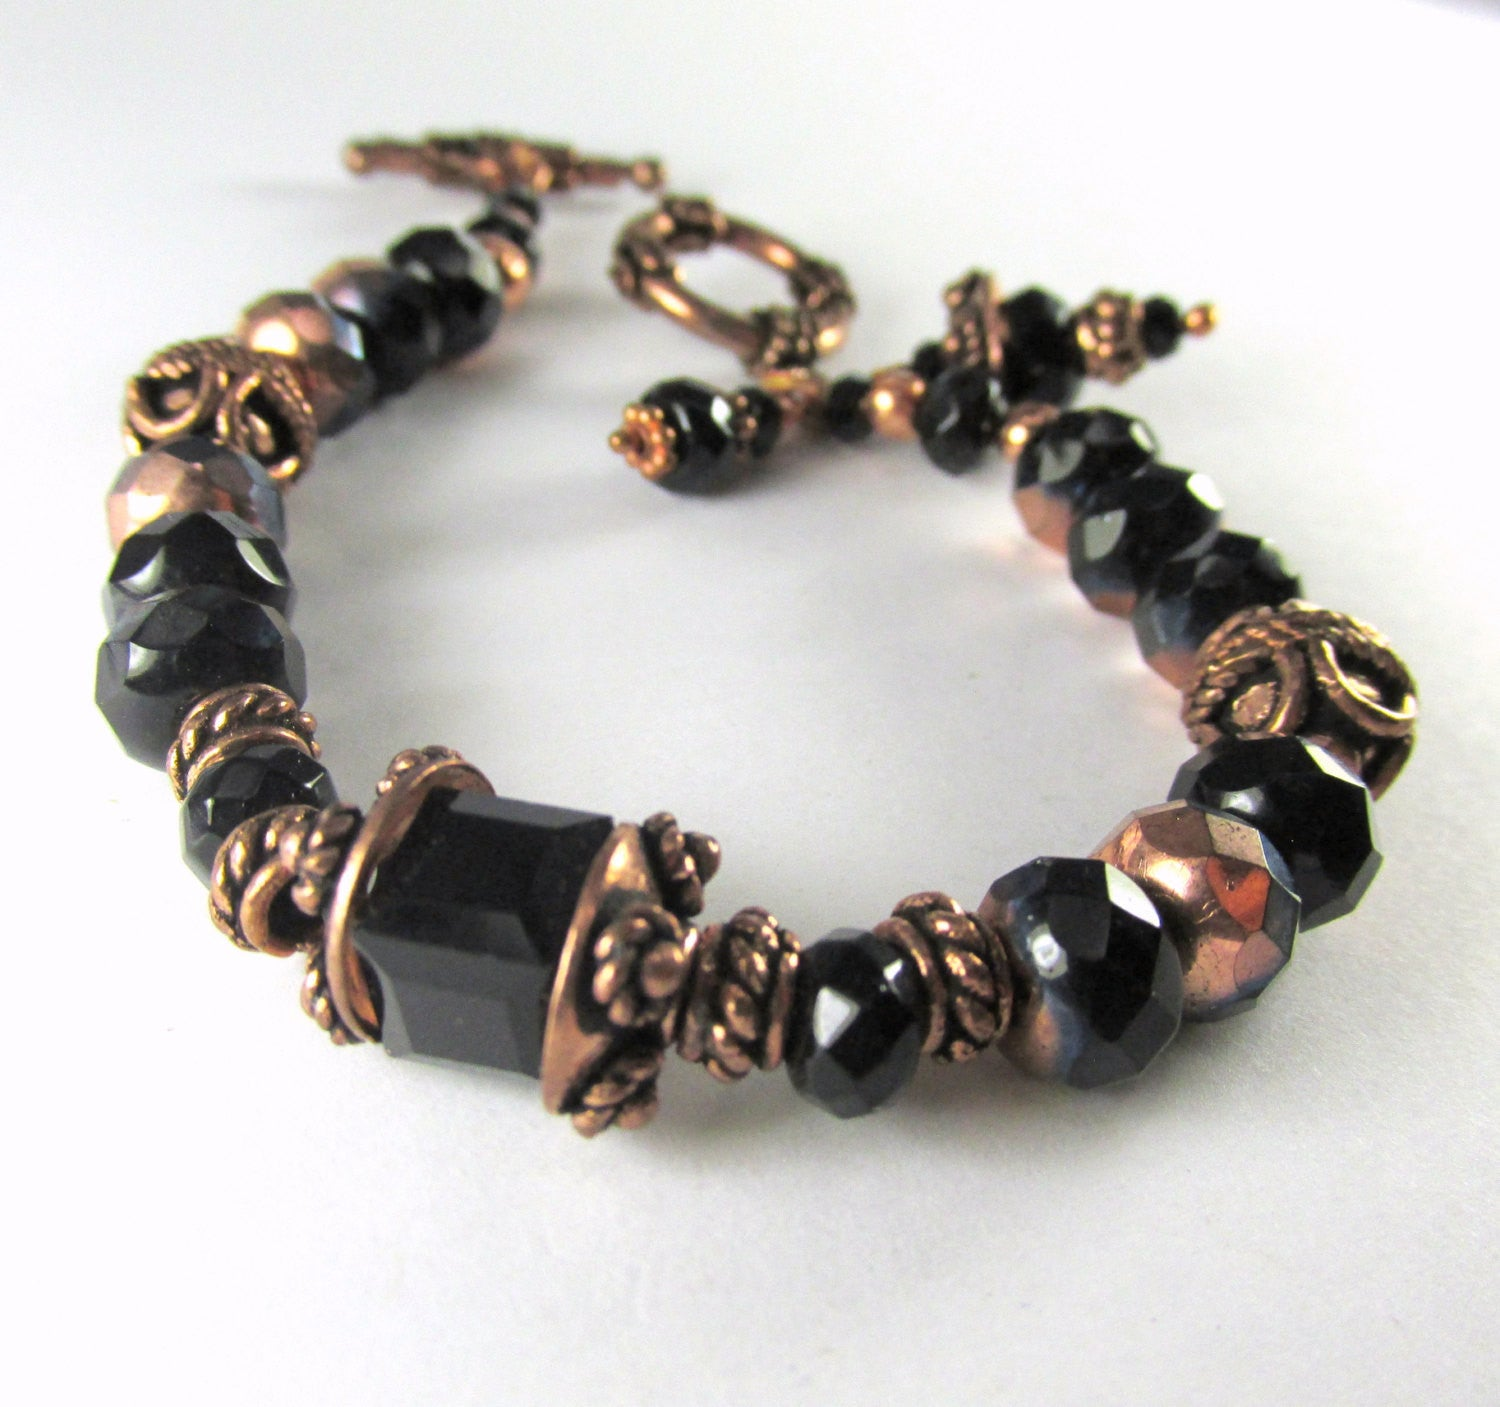 Black and Copper Bracelet with Czech Glass and Swarovski Cubes - Odyssey Creations